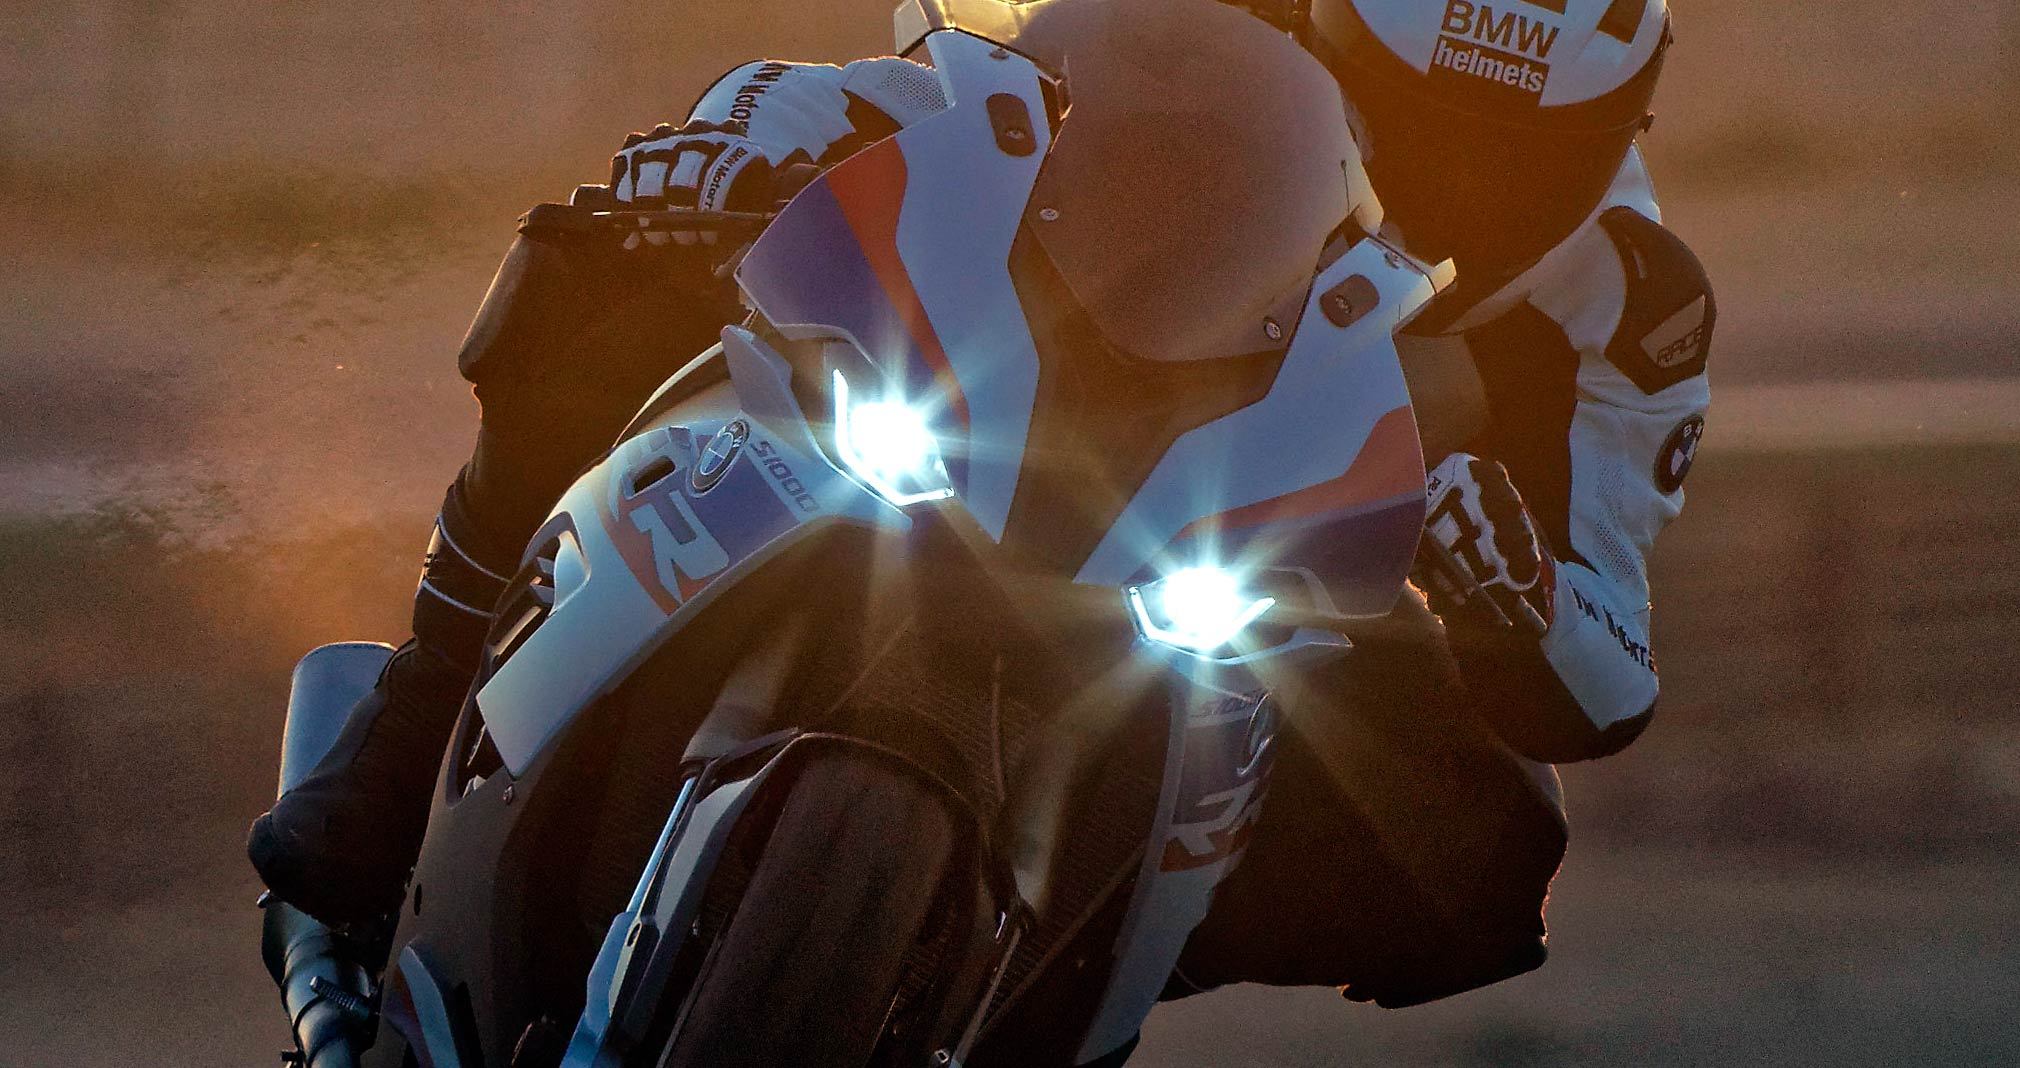 scorching 205hp 2020 bmw s1000rr superbike revealed   u2022 total motorcycle